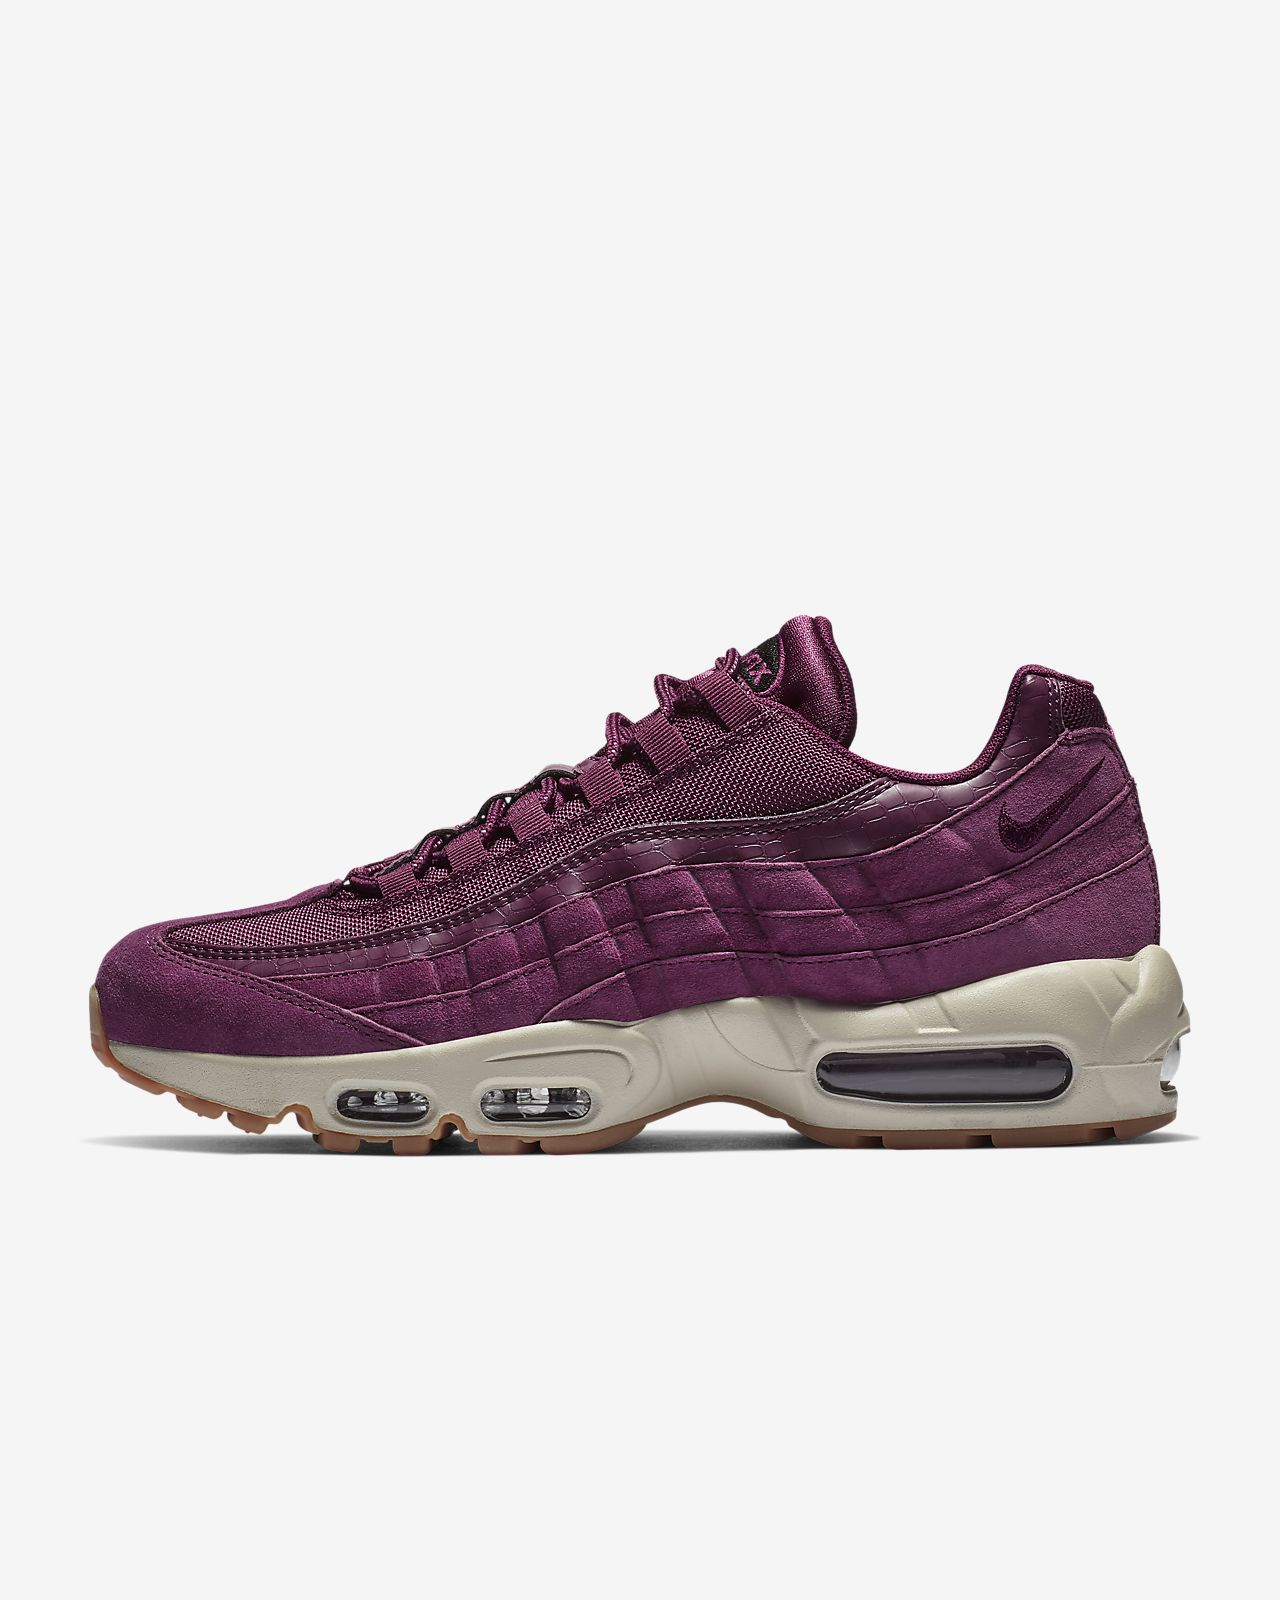 nike air max 95 bordeau